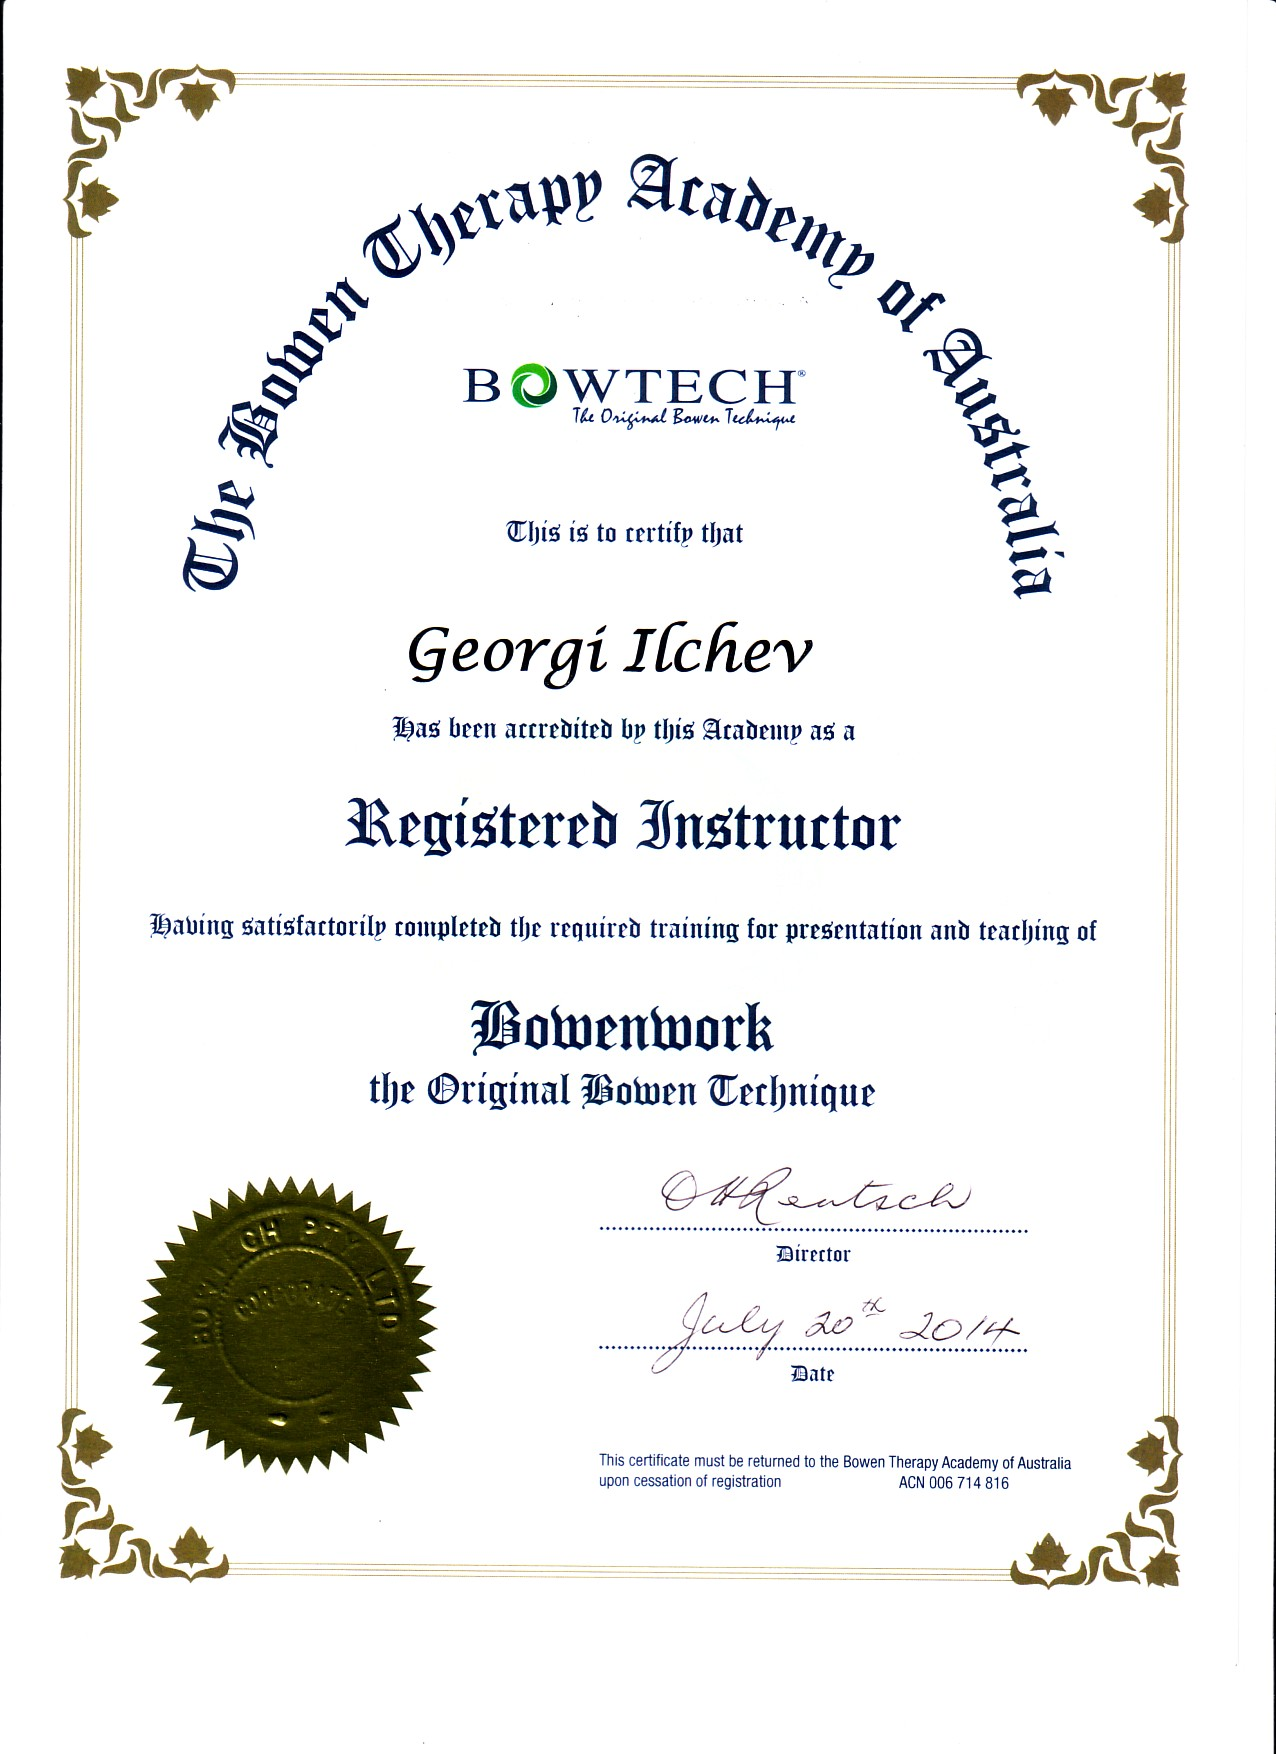 BOWTECH Instructor certificate